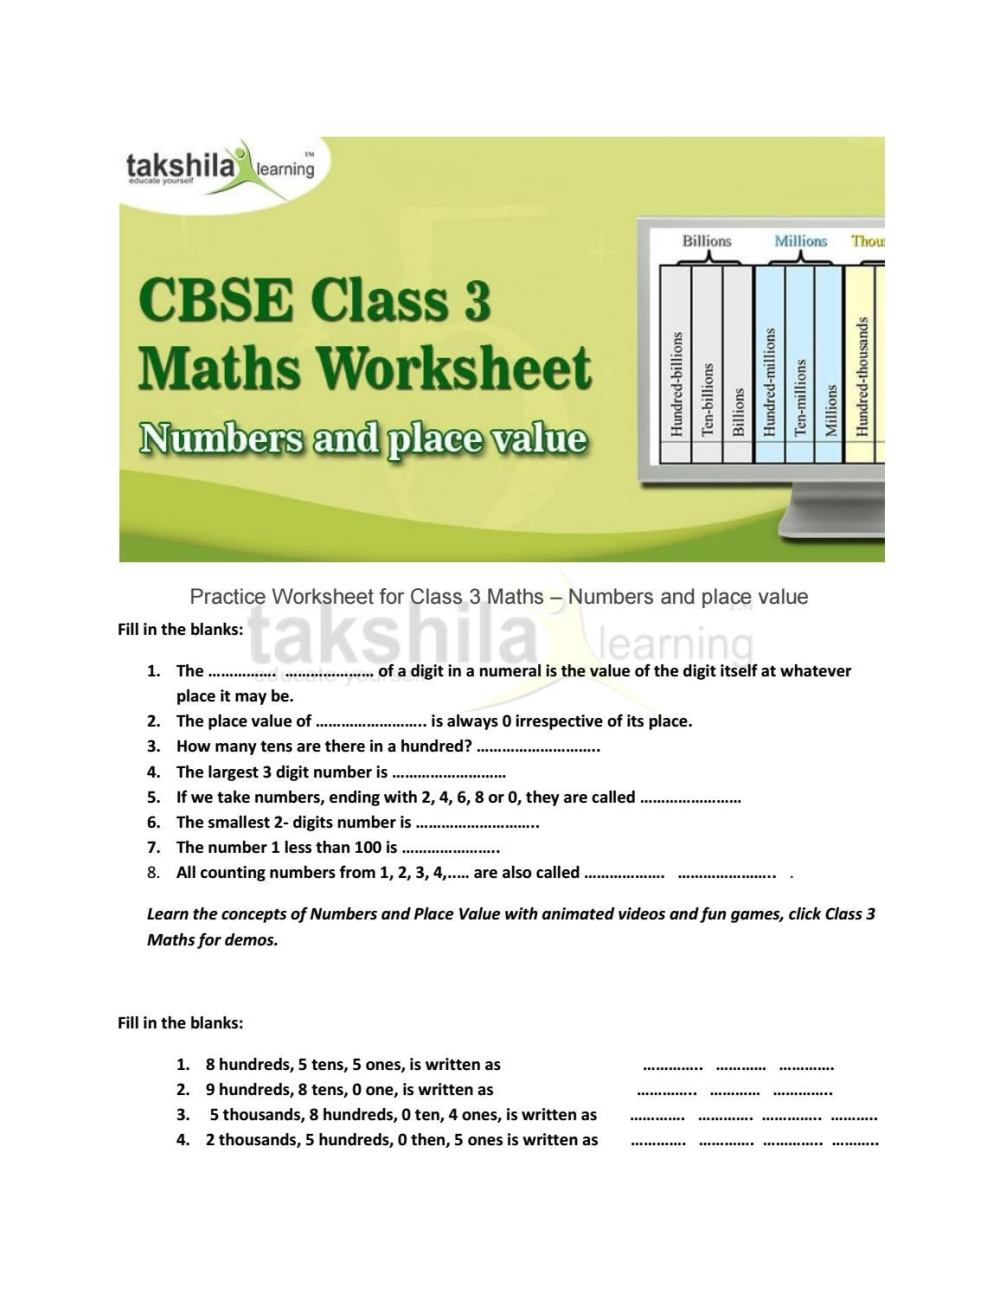 medium resolution of Cbse class 3 maths worksheet numbers and place value by Takshila learning    Online Classes - issuu